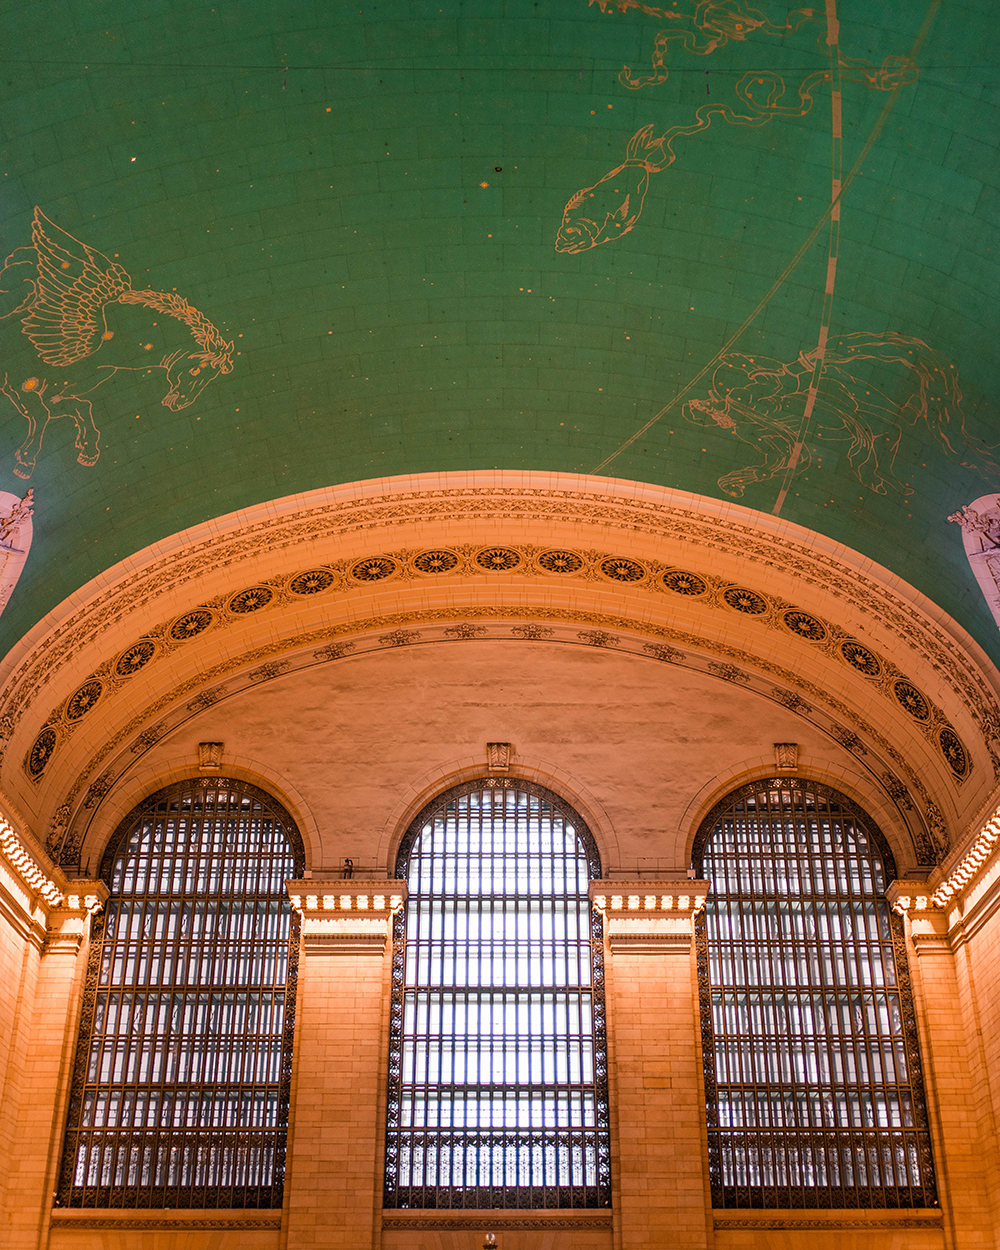 Postcards from Hawaii, NYC, New York City, Itinerary, Grand Central Terminal